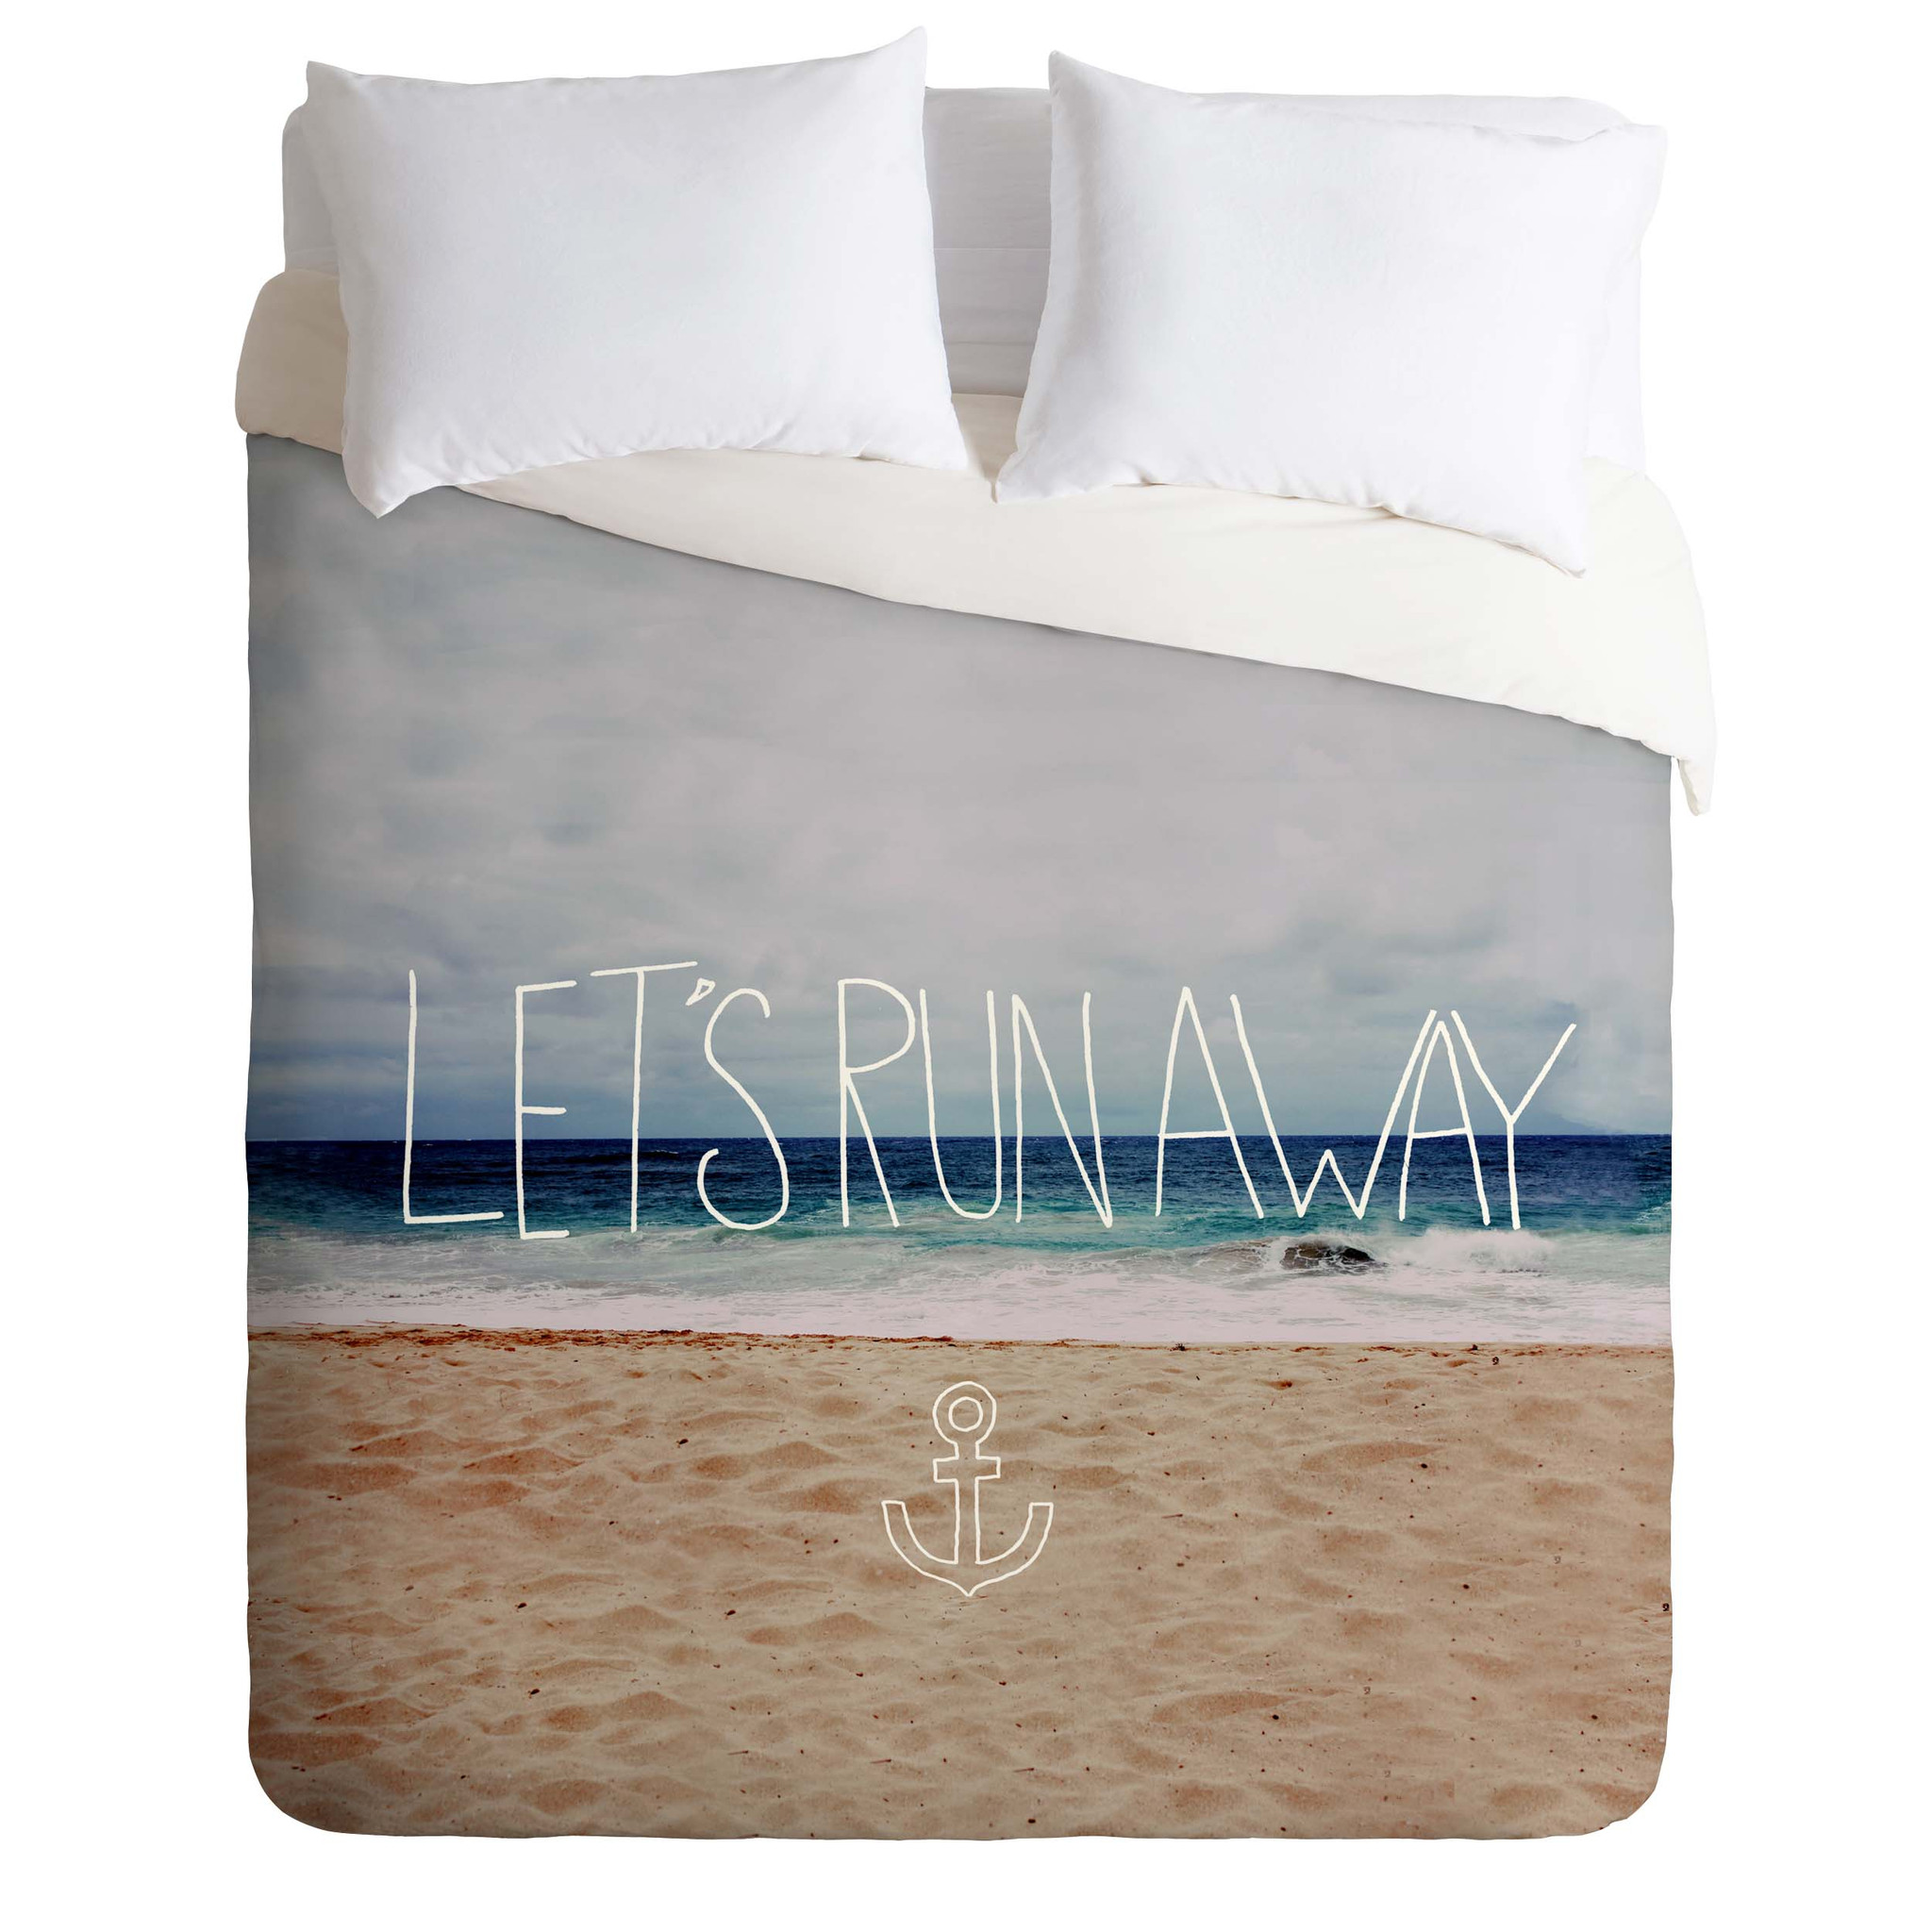 leah-flores-lets-run-away-iii-duvet-and-pillows-top-lightweight_f556b8bf-aad0-477c-a435-c9cc56c6cd96